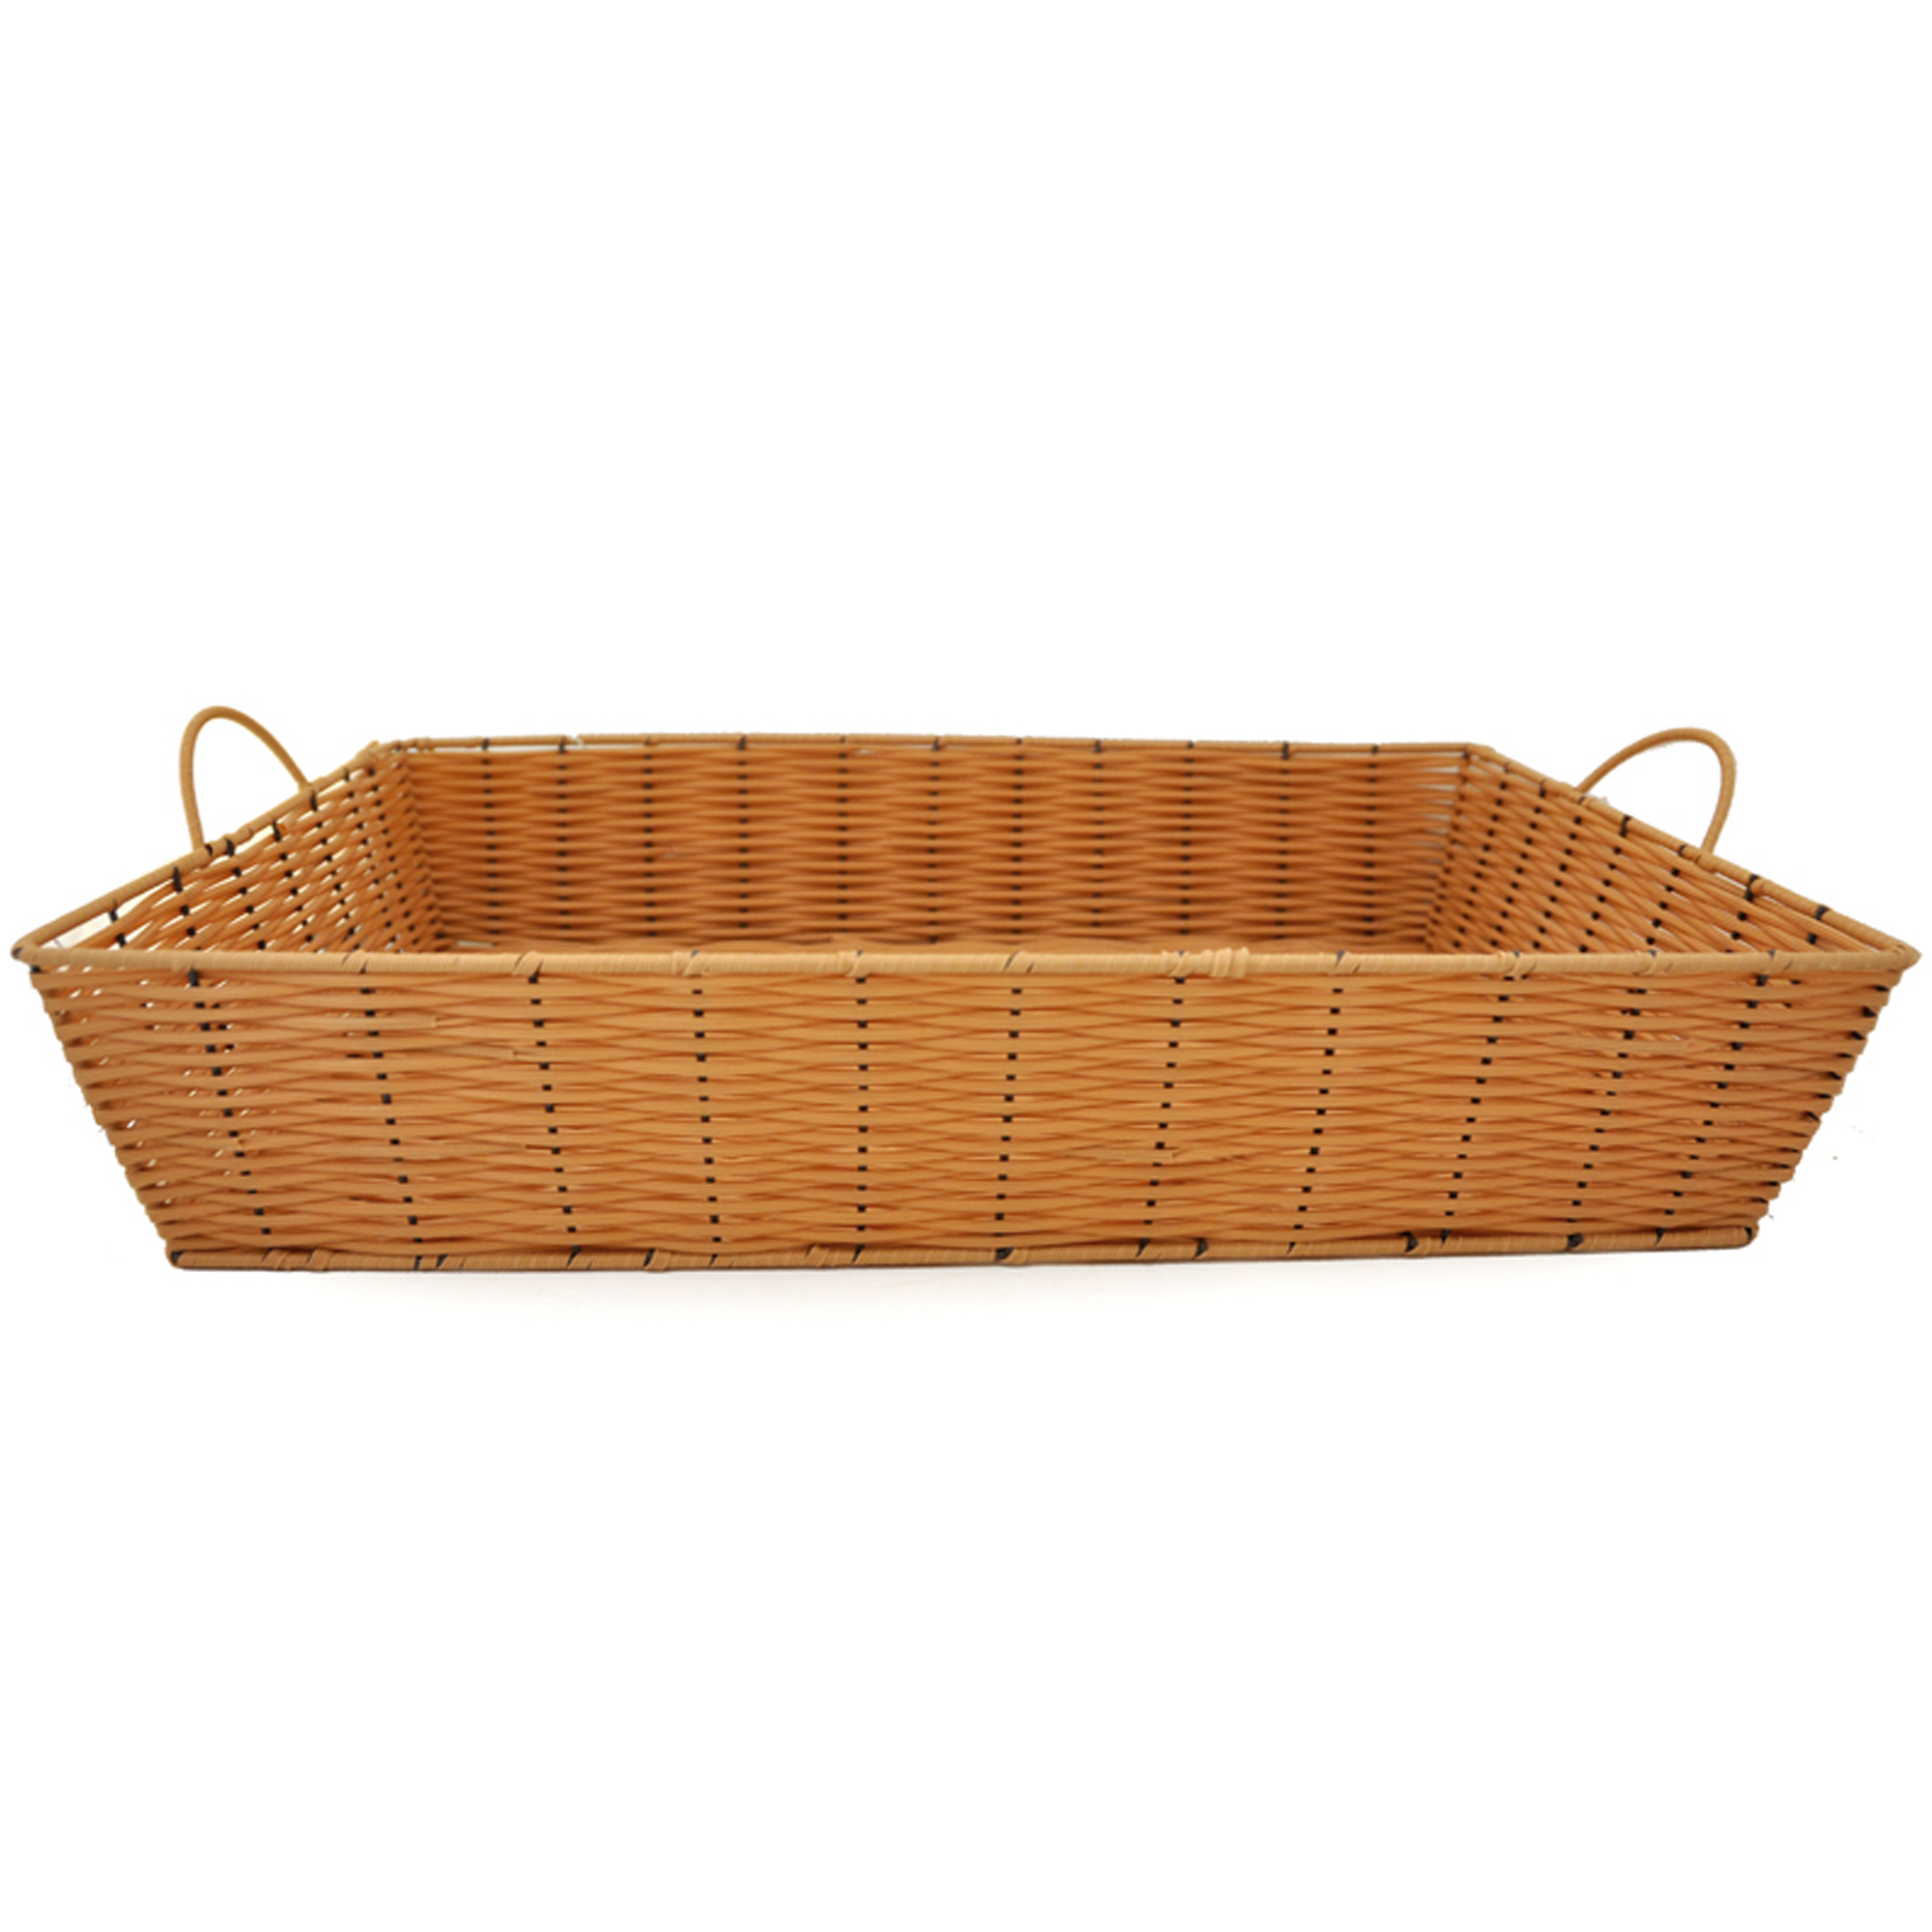 Rectangular Synthetic Wicker Tray with Handles-Extra Large 19in